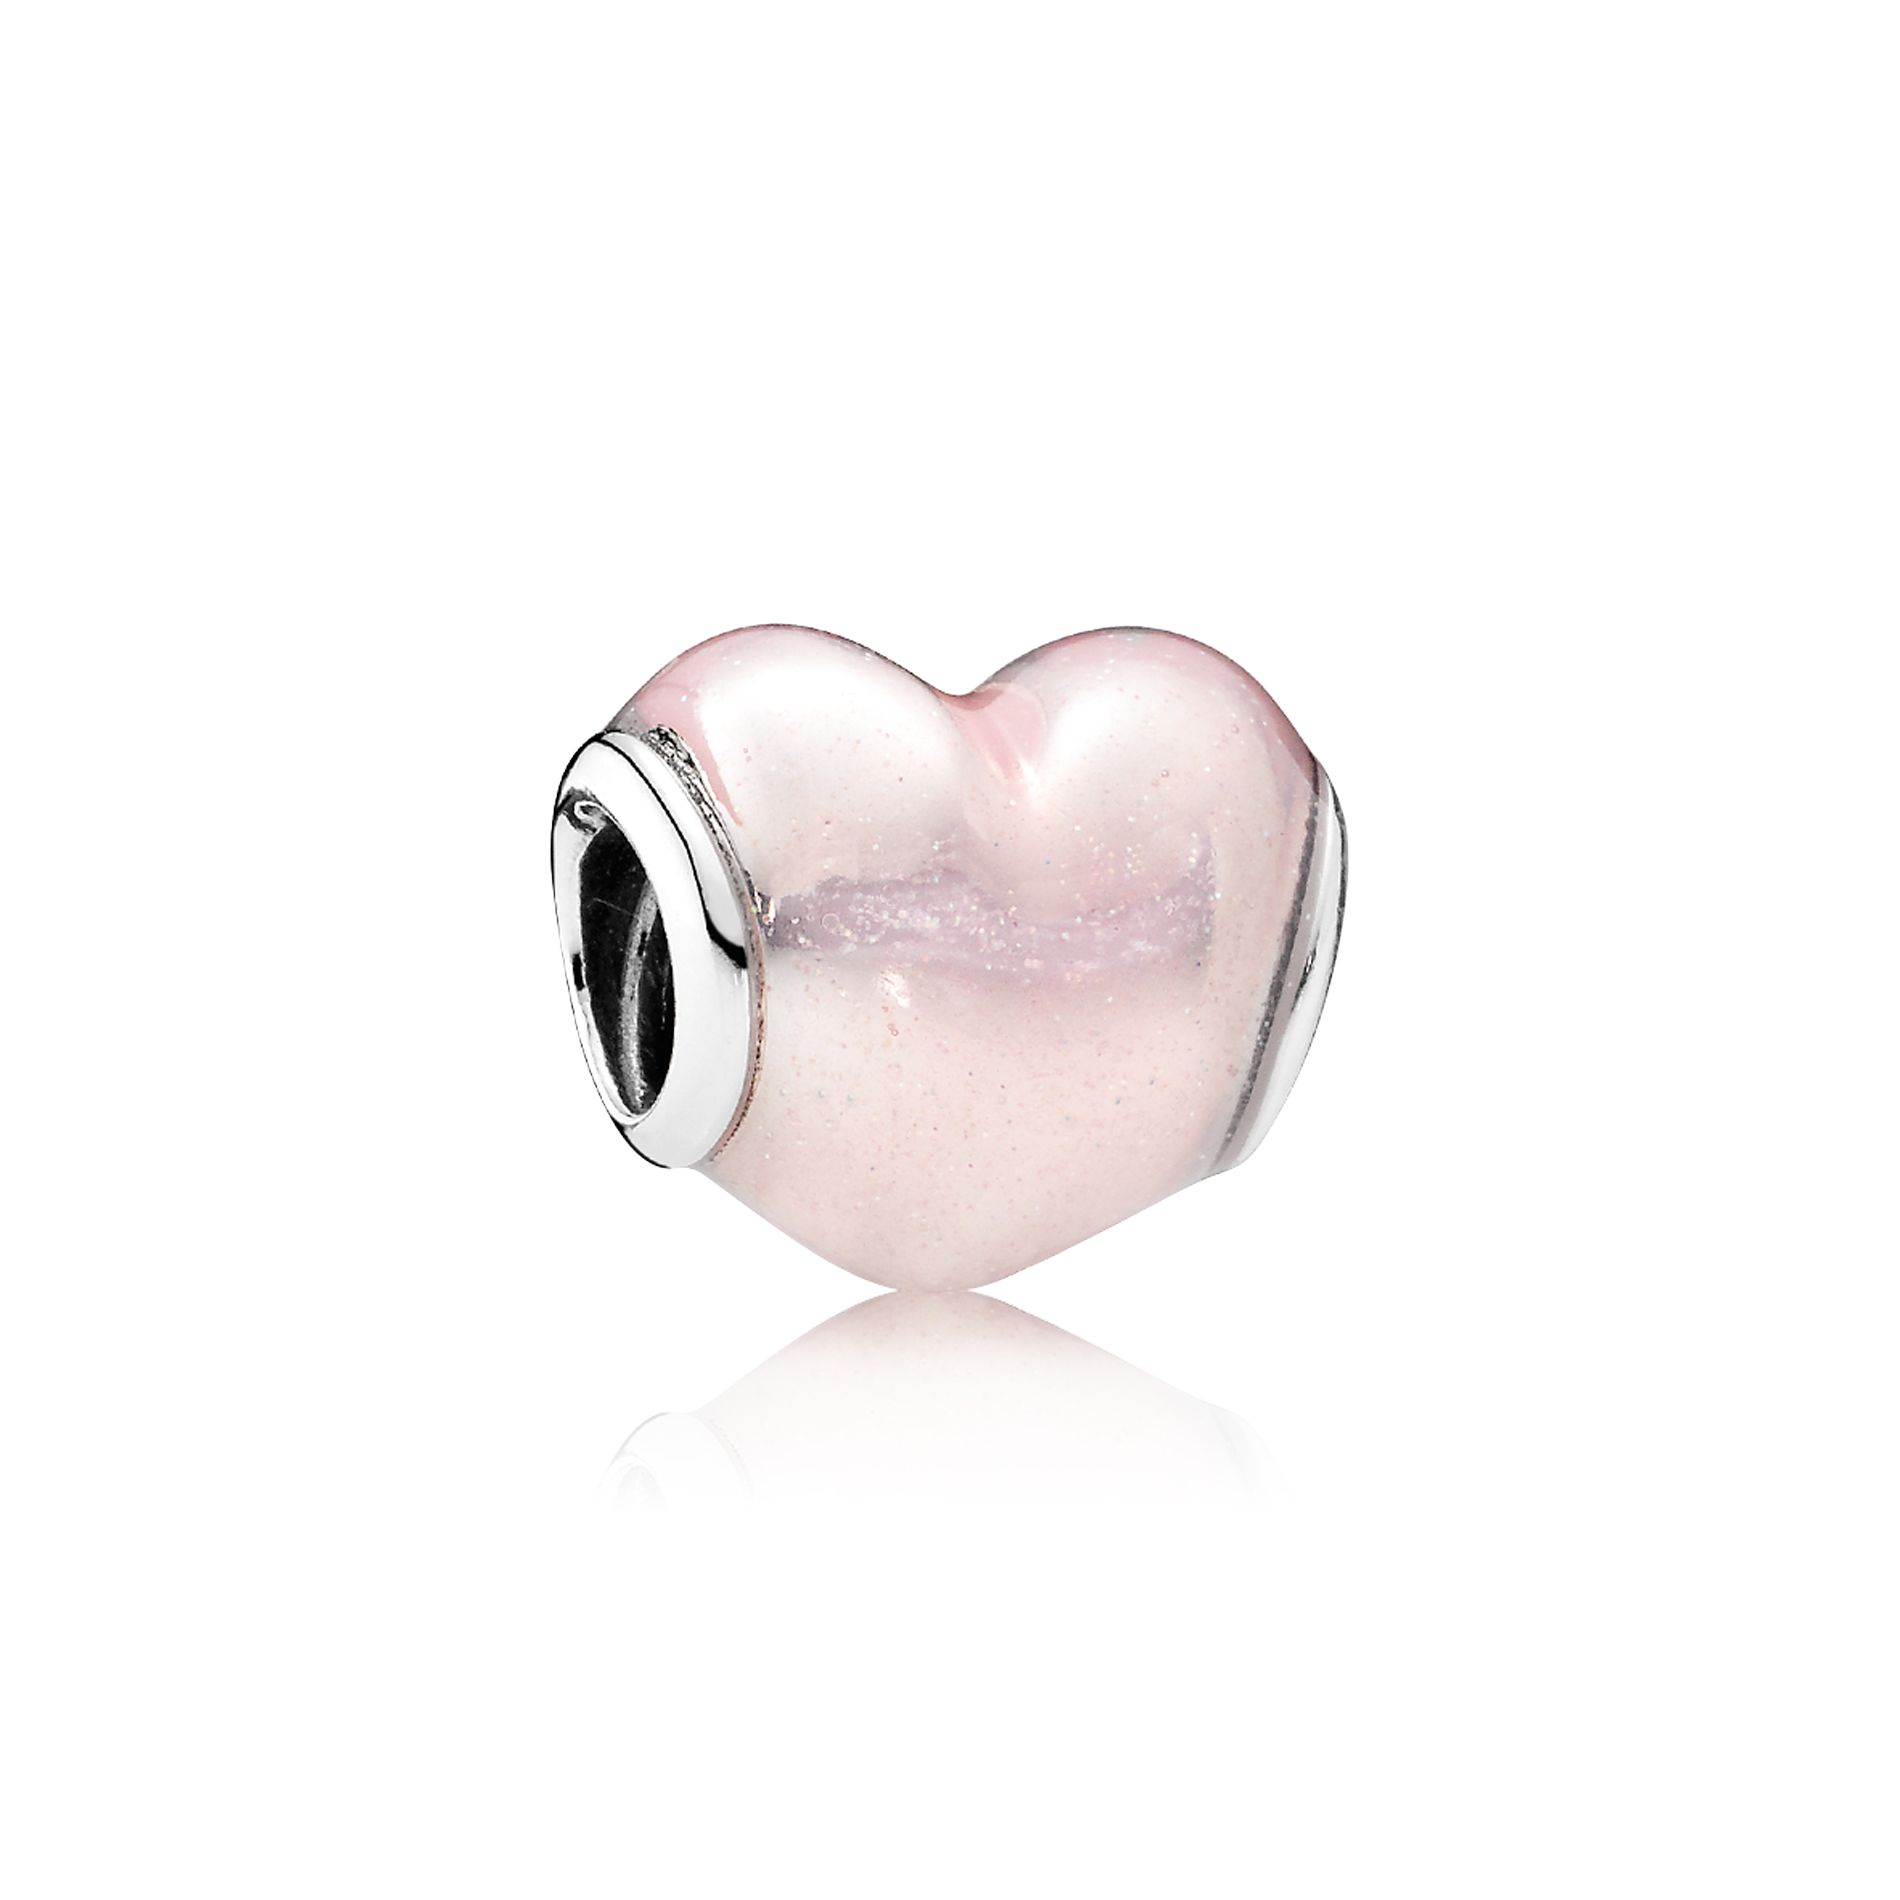 Solid S925 Sterling Silver Charm I Love Husbend Charm Pendant w//Clear Accents